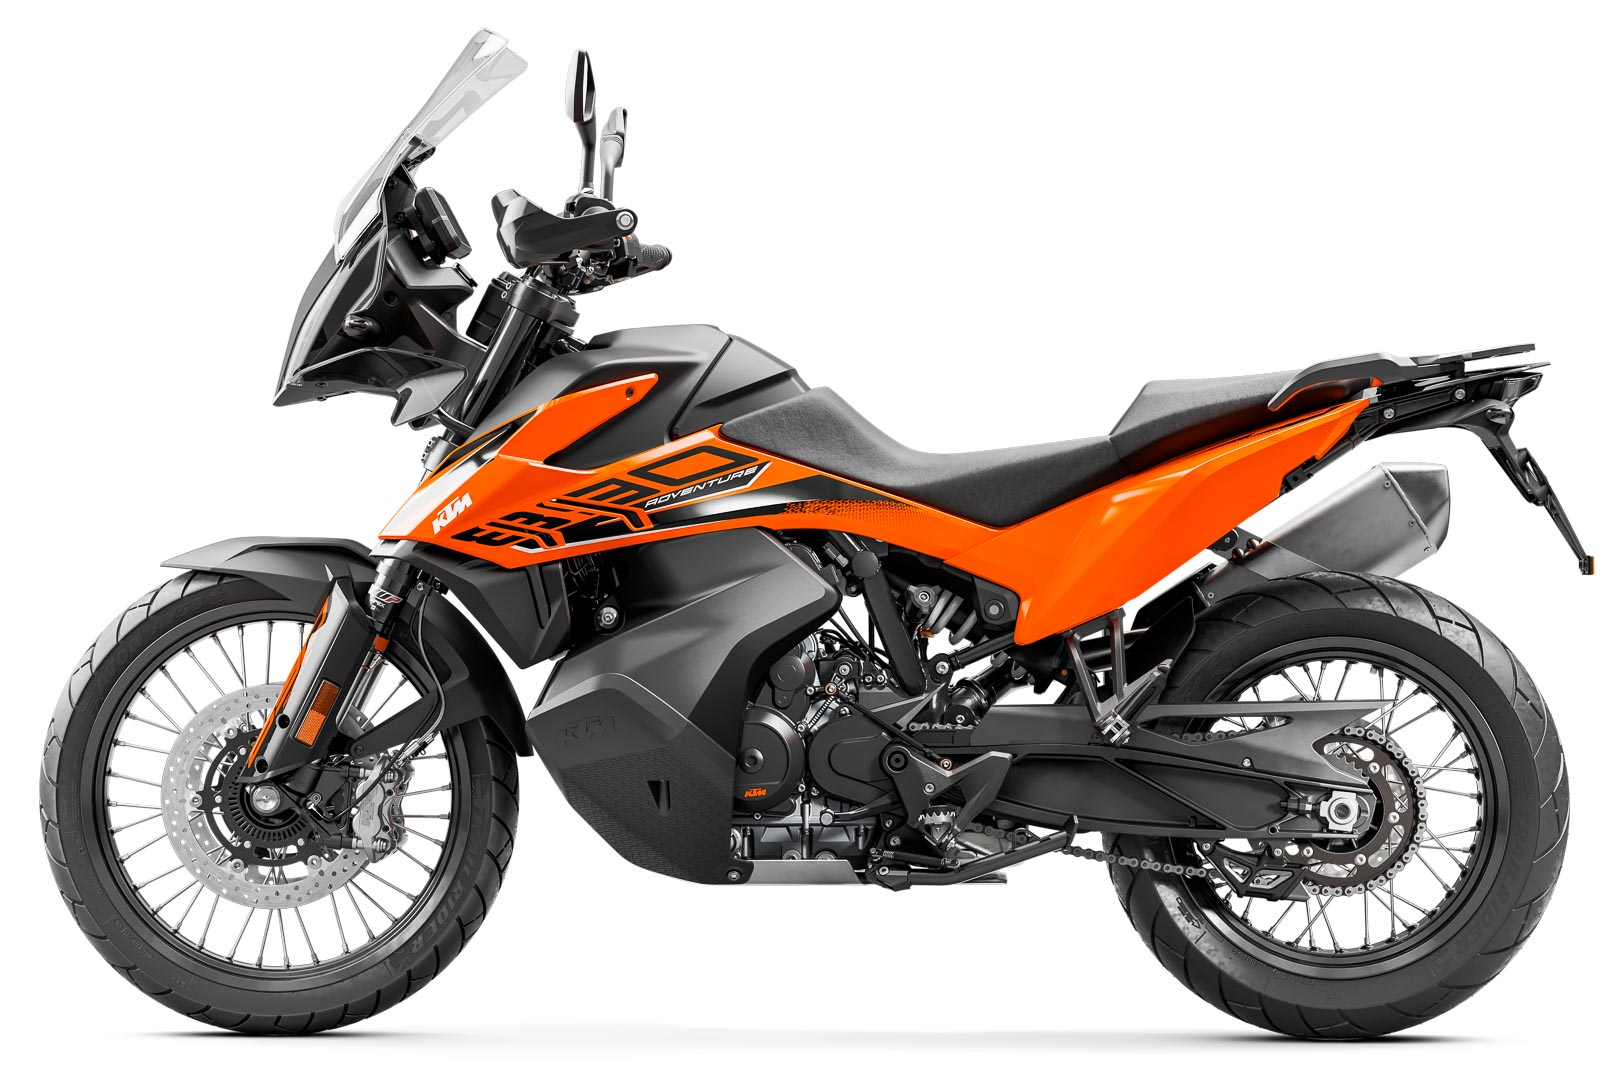 2021 KTM 890 Adventure First Look: Price